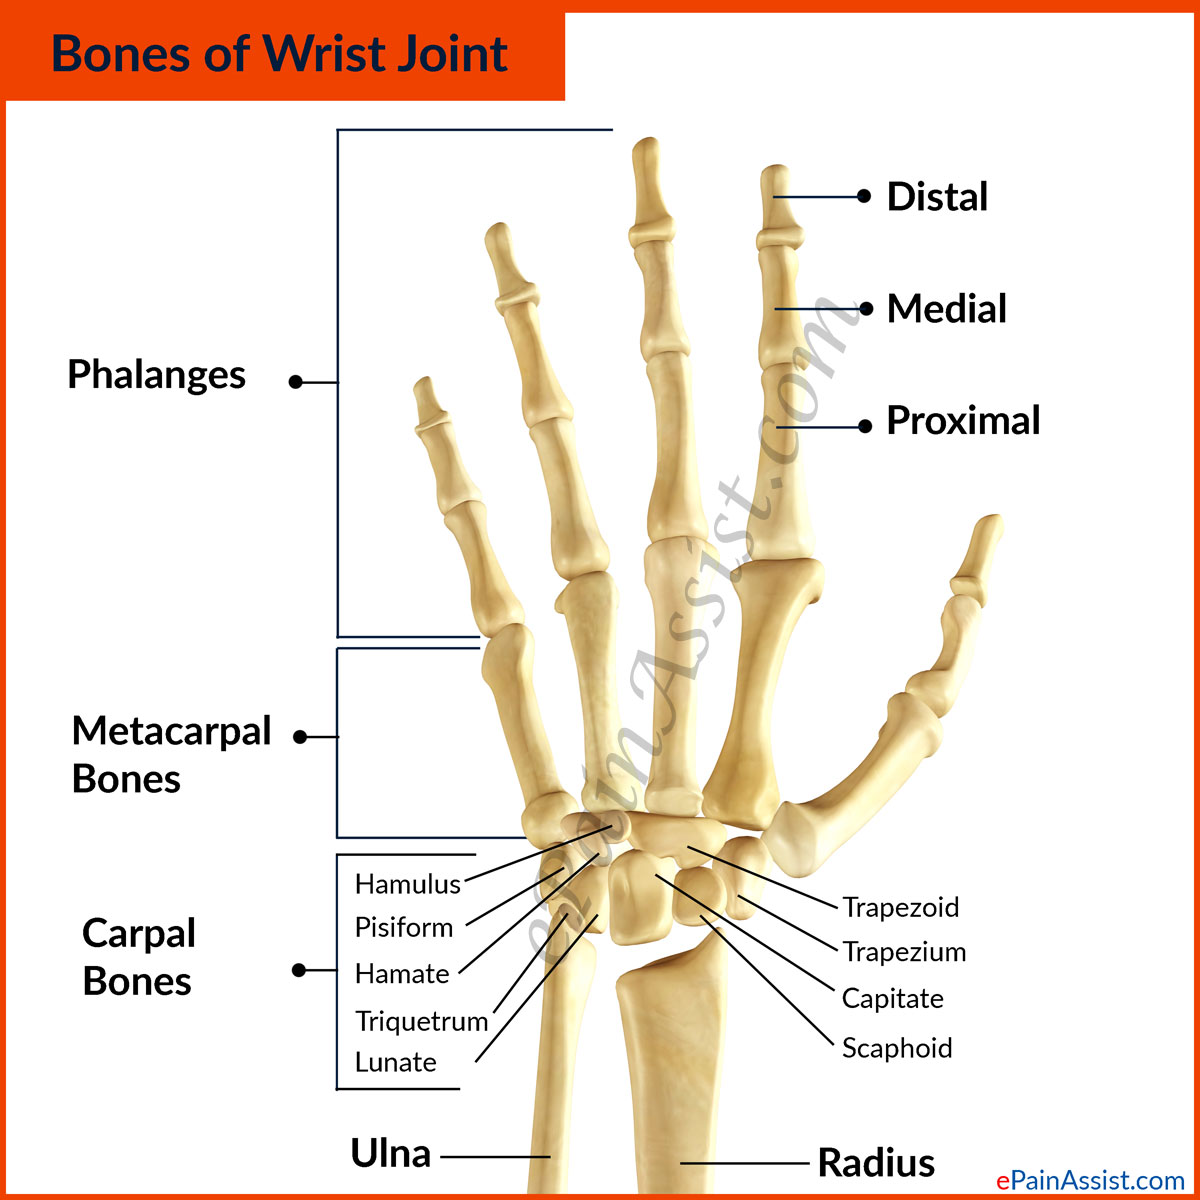 wrist joint anatomy|bones, movements, ligaments, tendons, Sphenoid